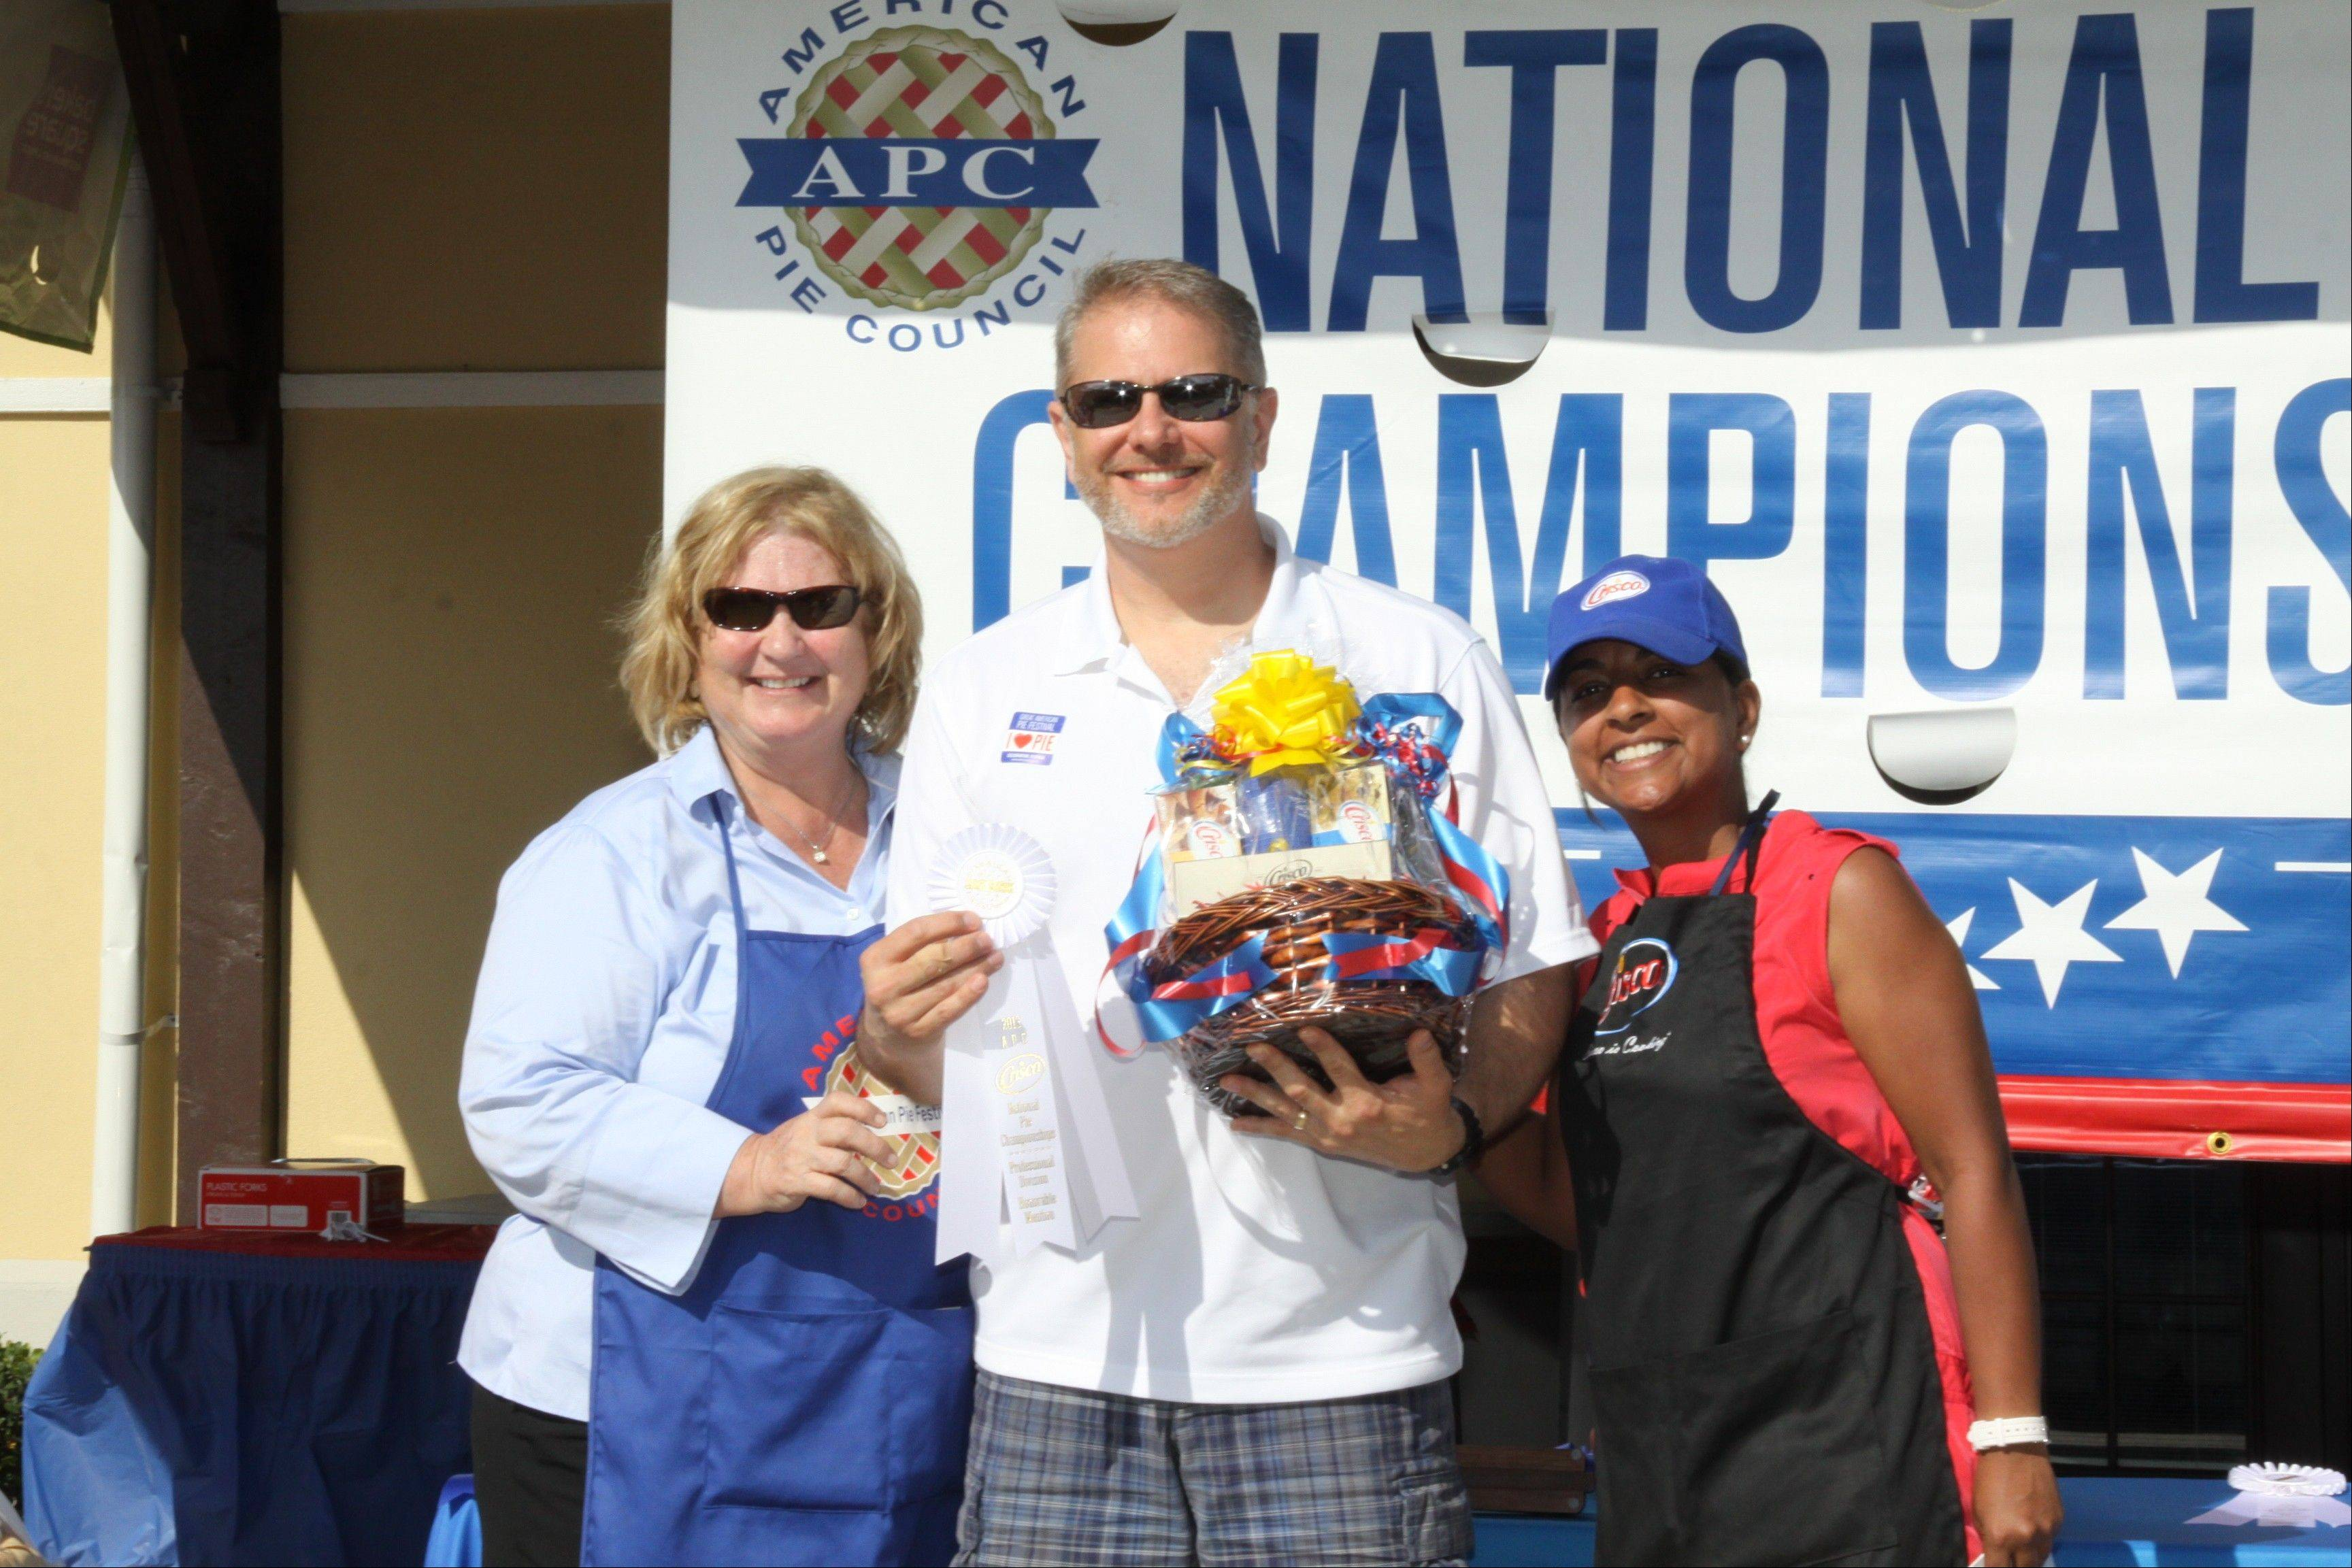 American Pie Council director Linda Hoskins congratulates Matt Zagorski of Arlington Heights on his second place win at the National Pie Championships in Orlando, Fla., in April.